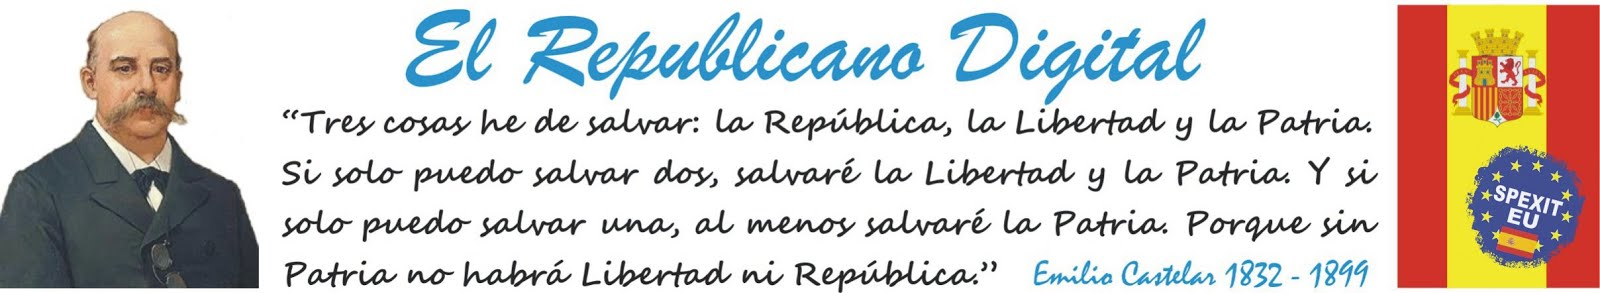 EL REPUBLICANO DIGITAL